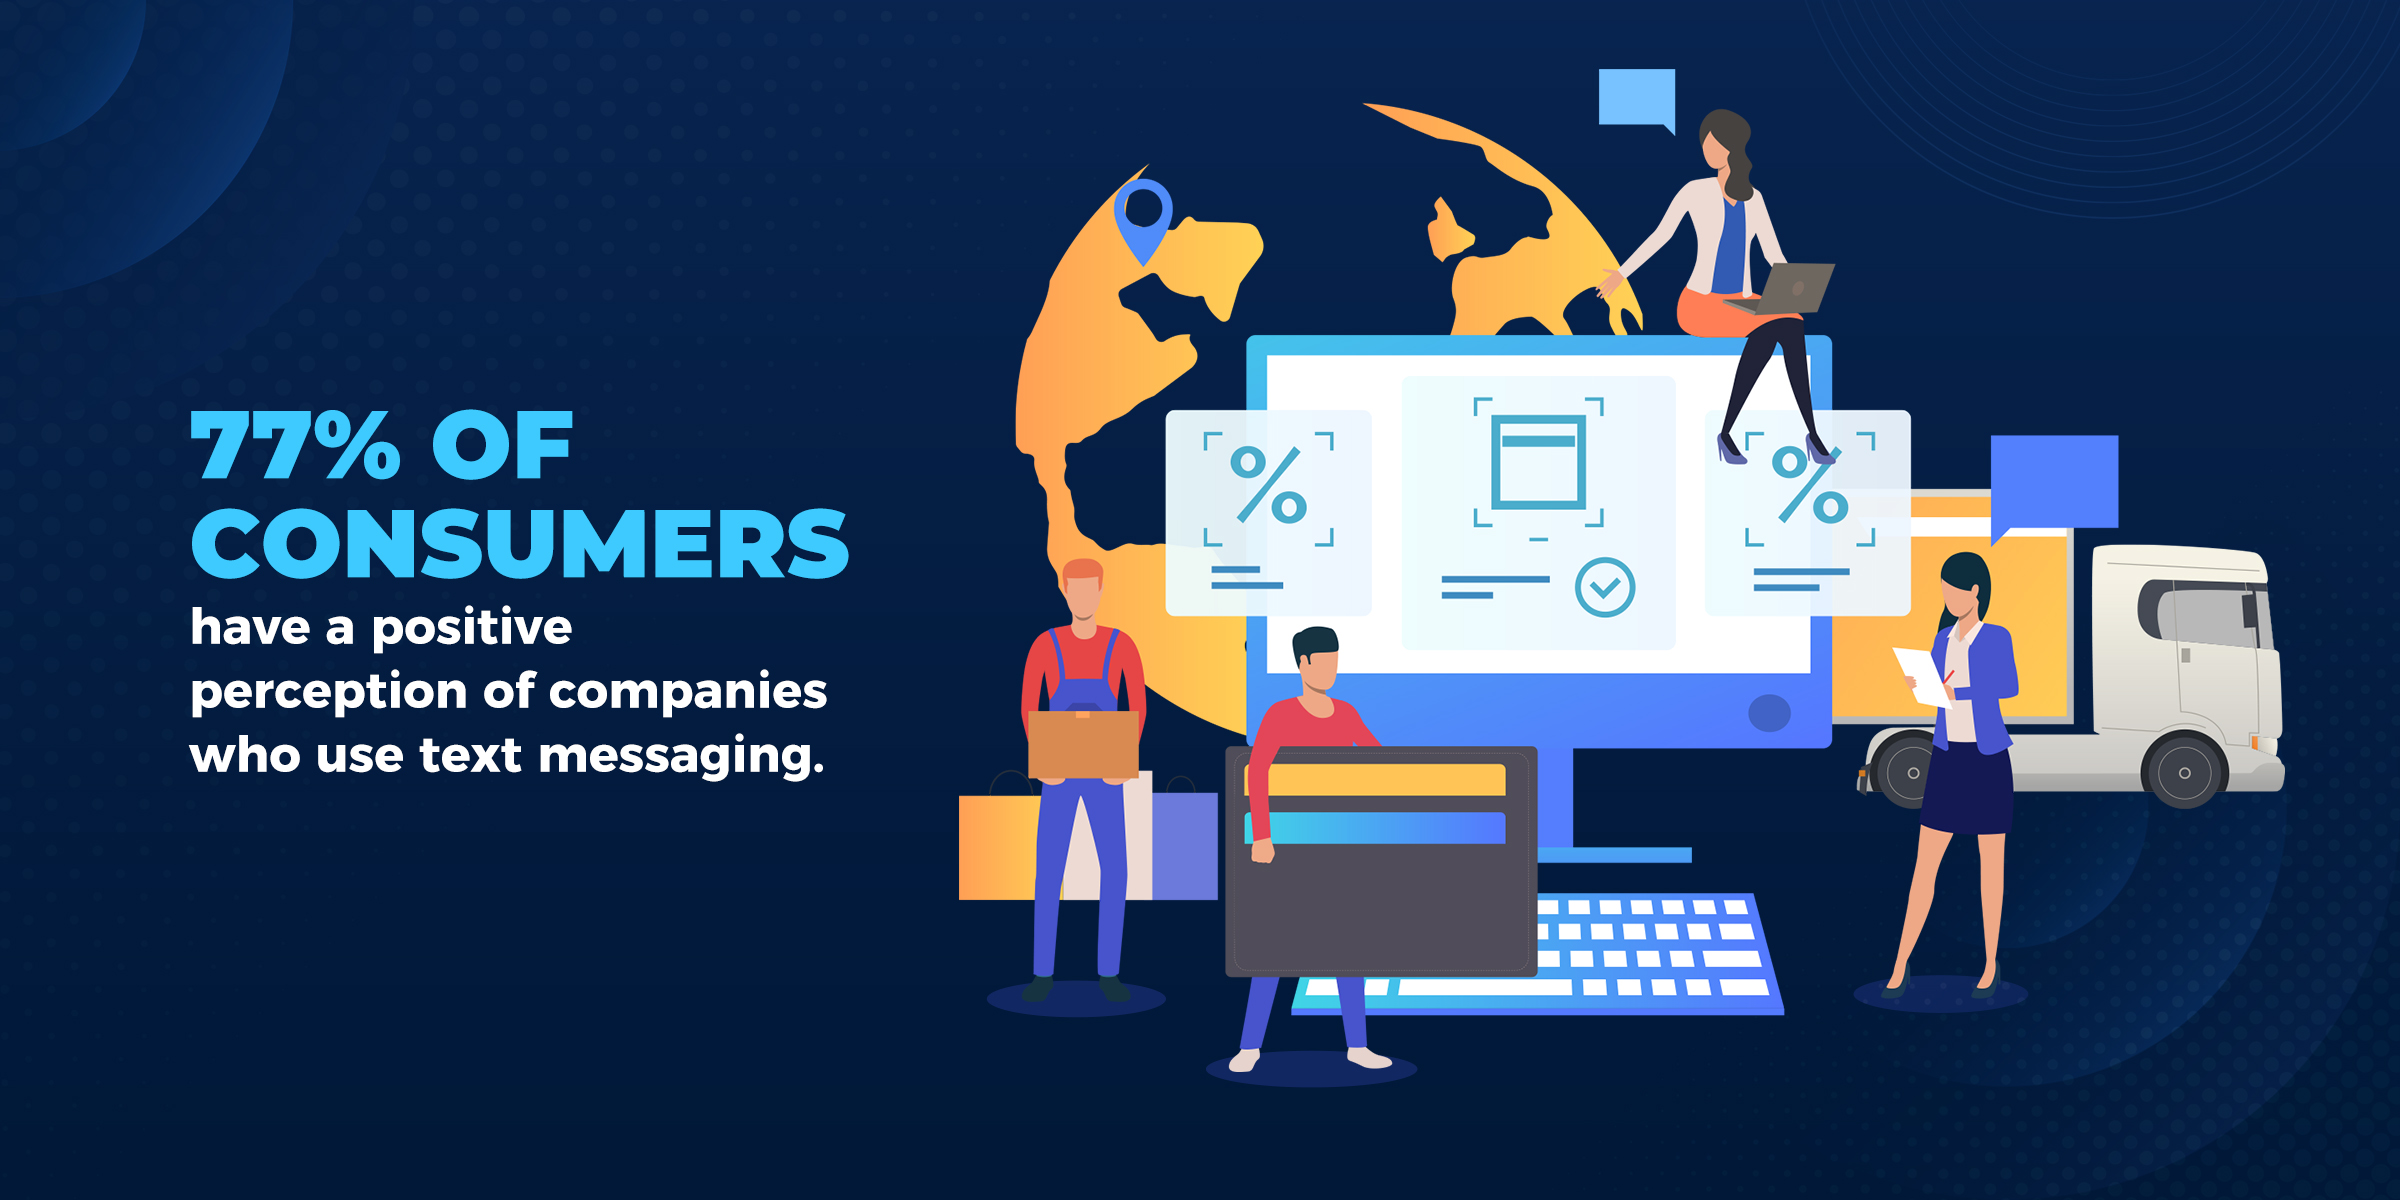 SMS Marketing Statistics - Consumer Approval